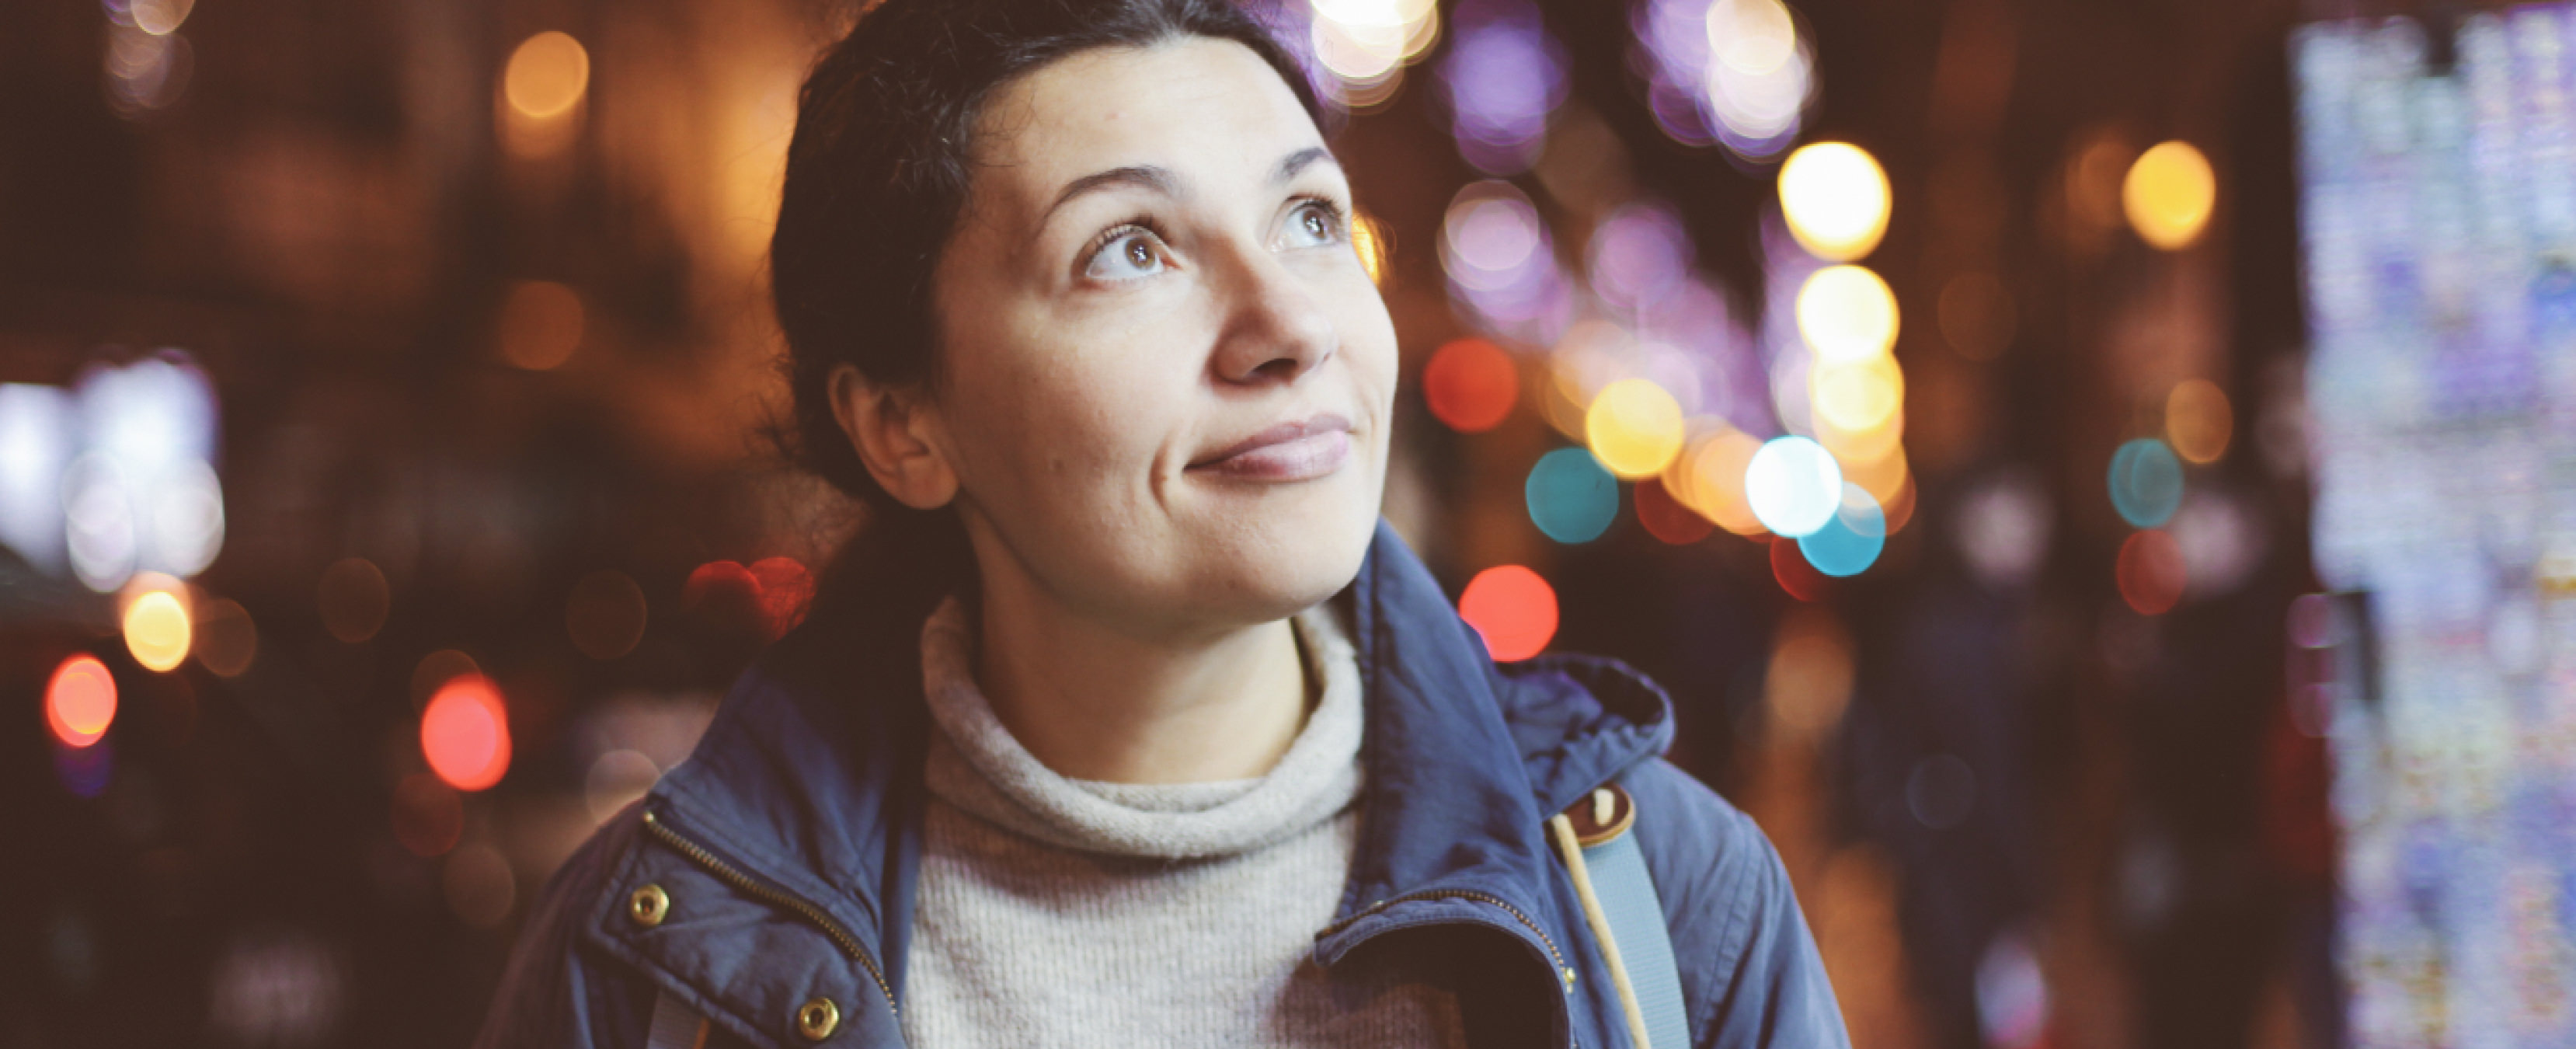 Woman in a city scene with lights in the background looking up smiling